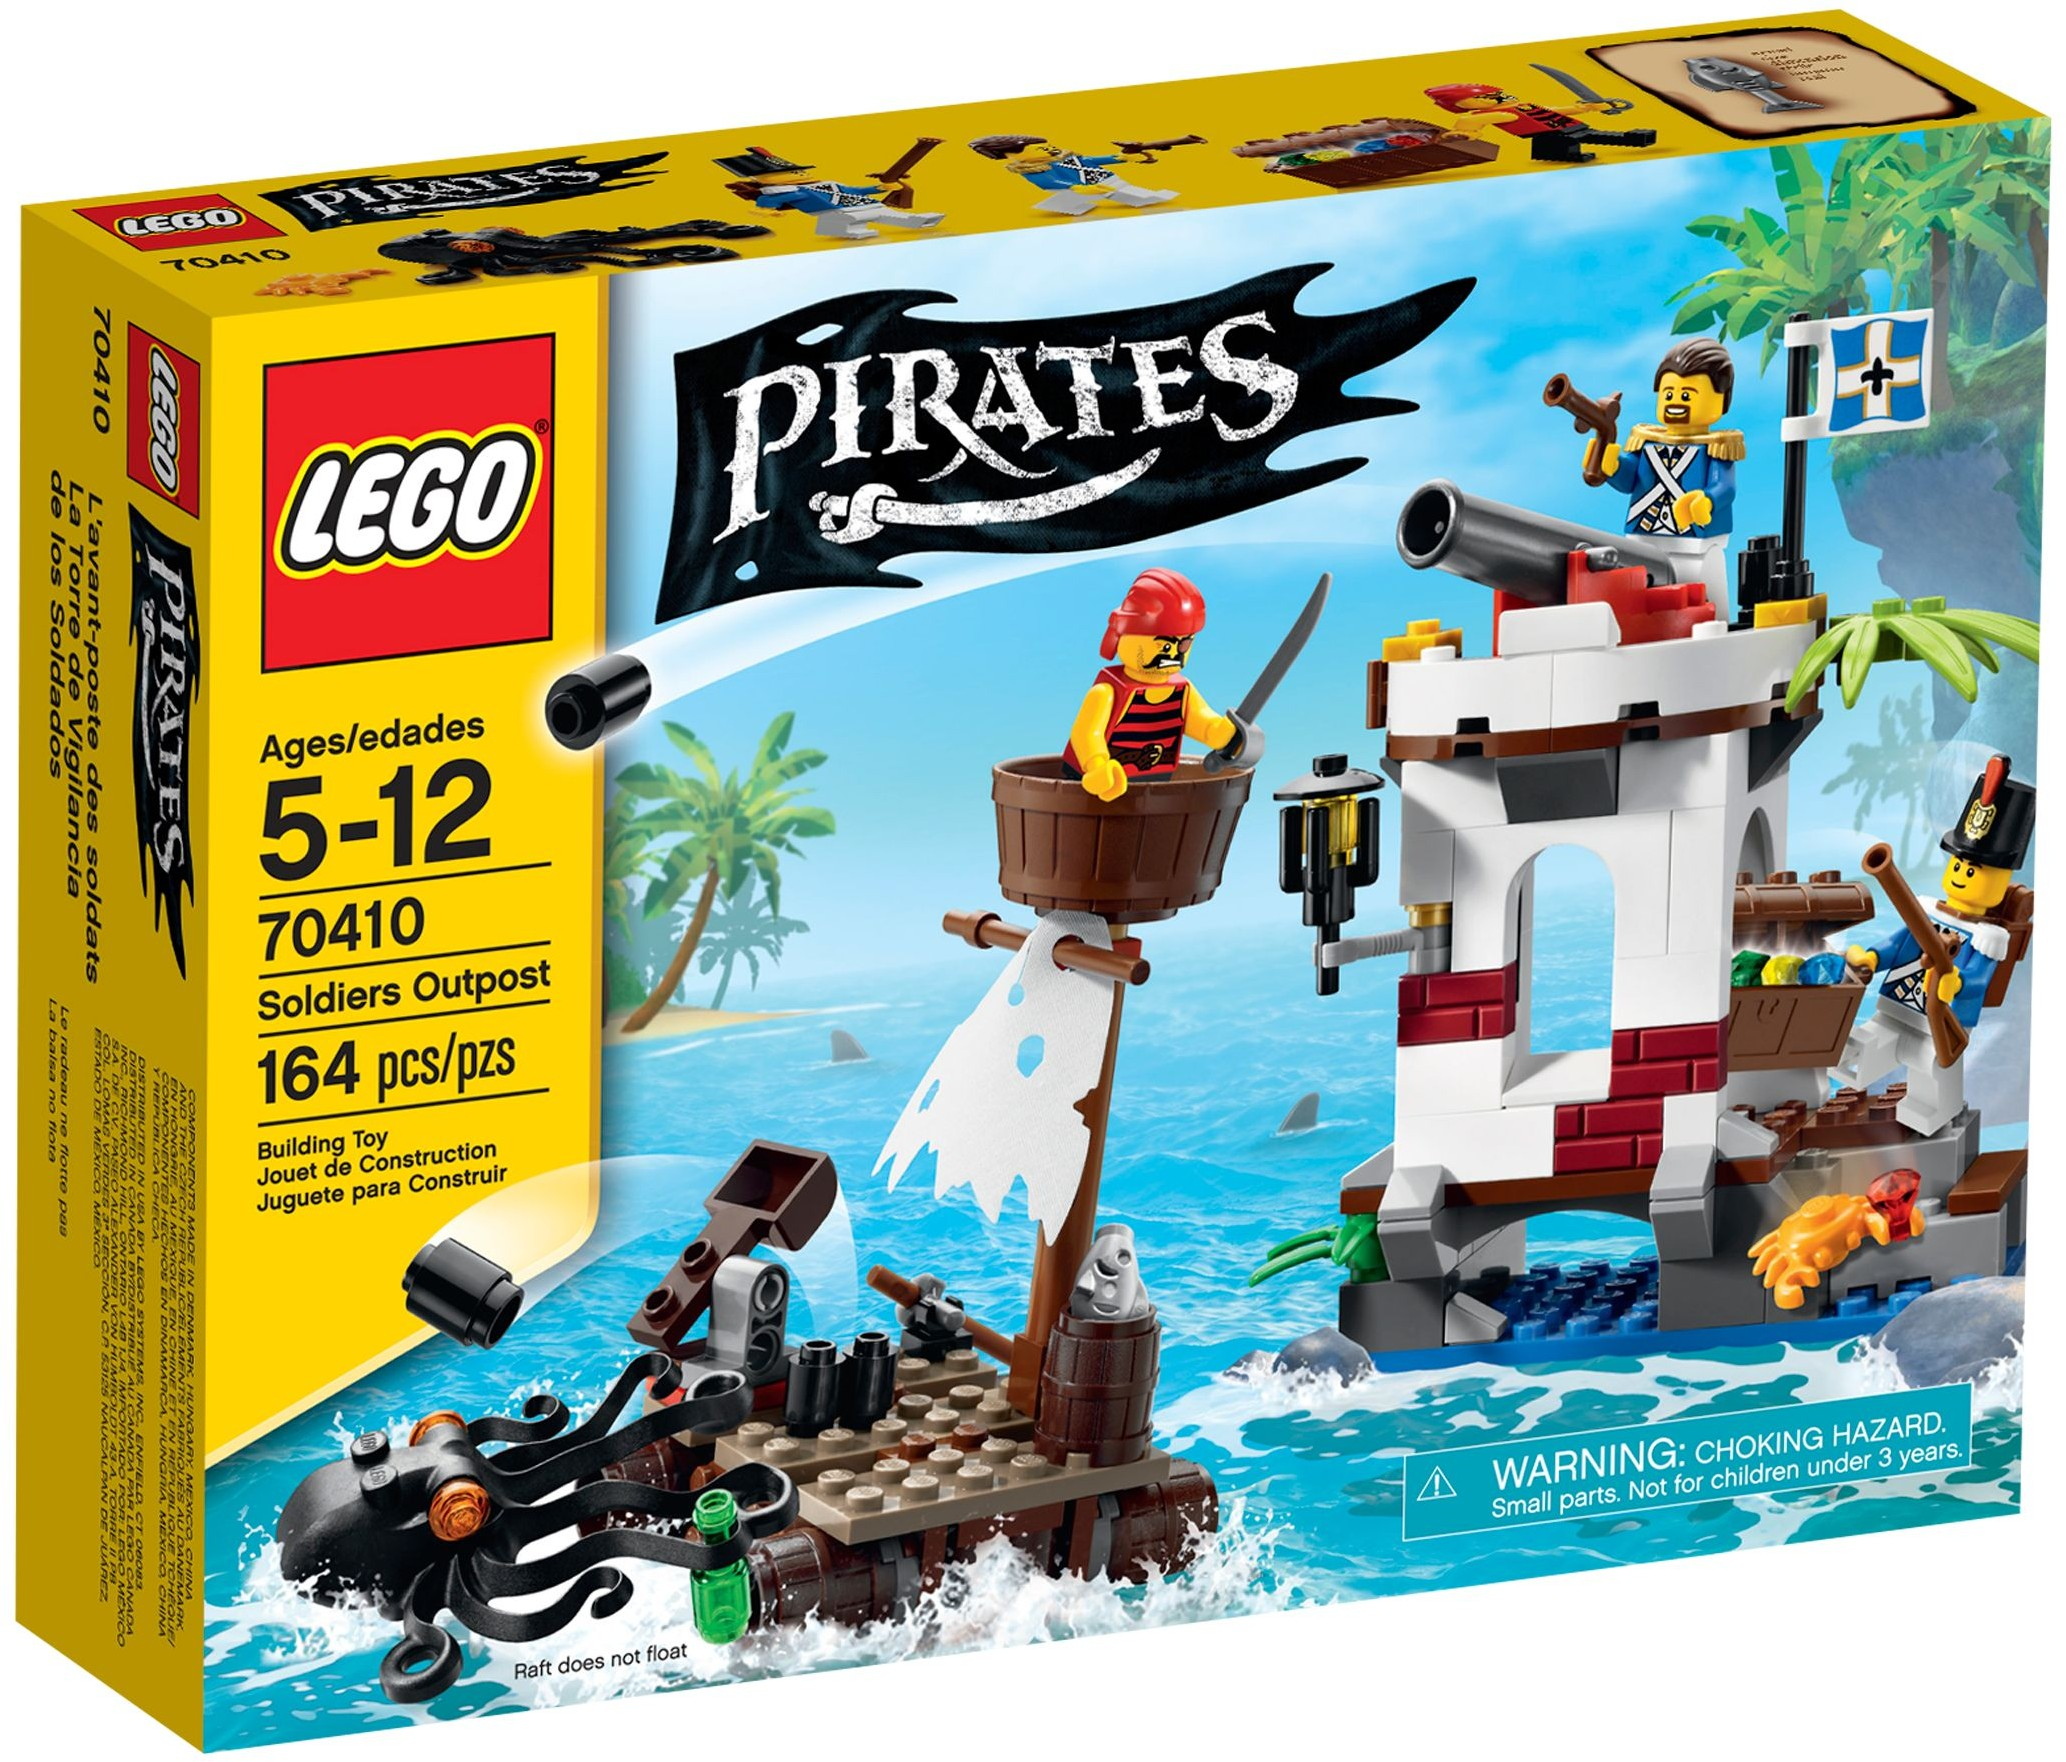 LEGO Pirates Sets: 70410 Soldiers Outpost NEW